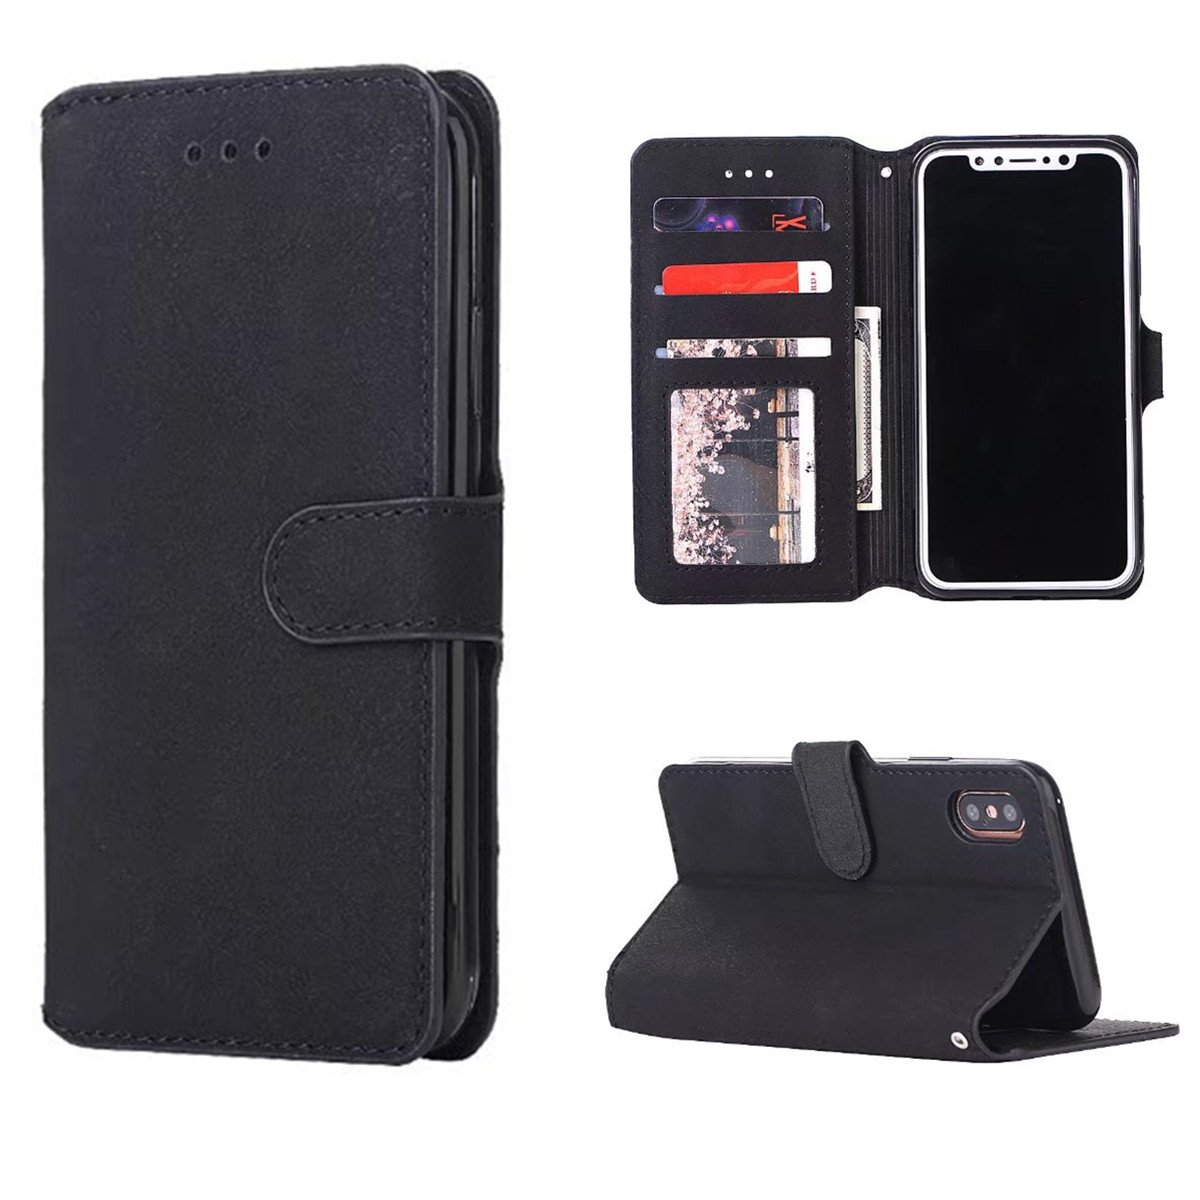 iPhone X Case, iPhone X Wallet Case, Genuine Leather Folio Flip Cover Stand Wallet Case with Business Card Holder for iPhone X (Black)